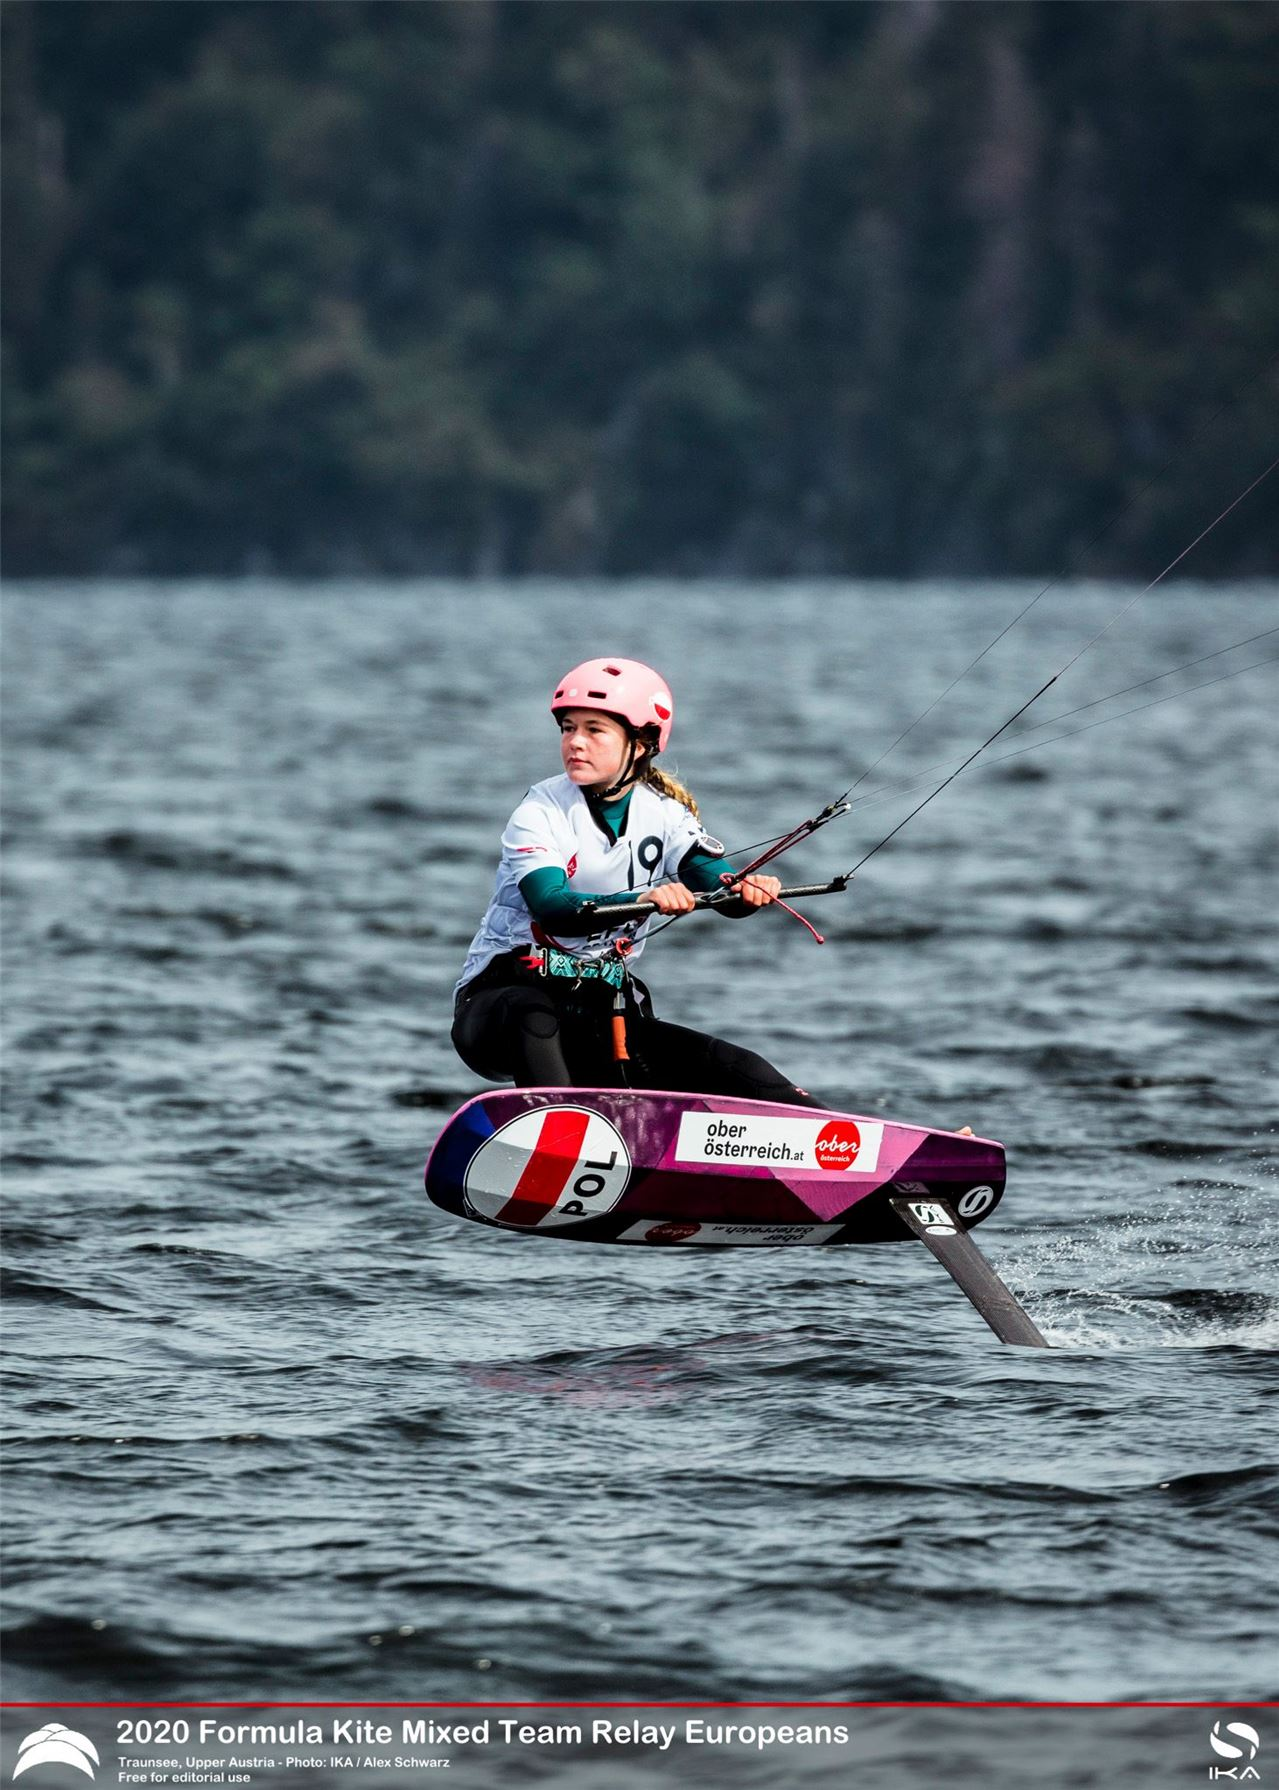 Kitefoil Racing - Relaxed Race Face!?